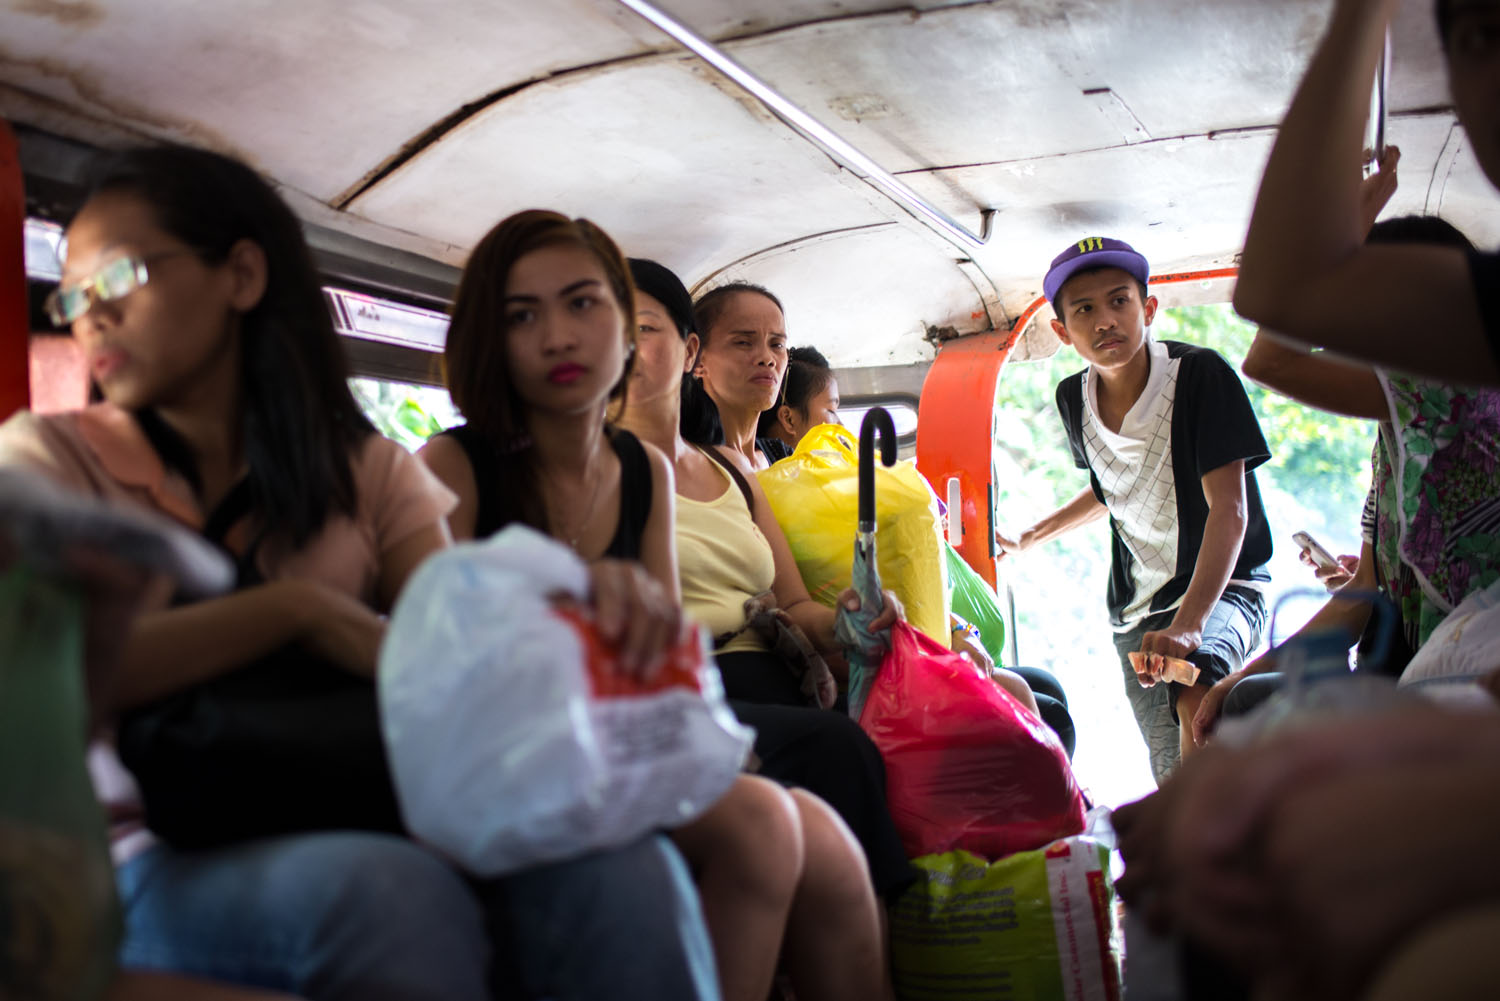 Brown jeepney ride